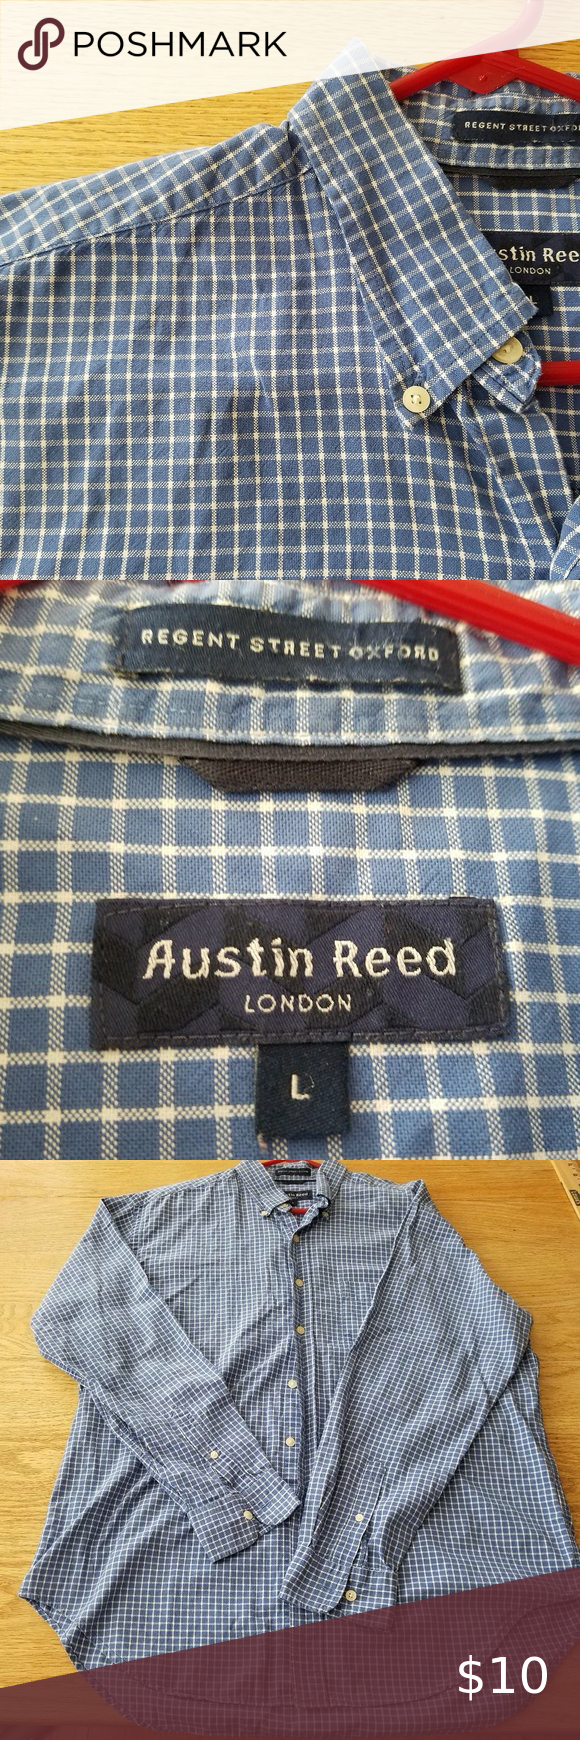 Austin Reed Mens Blue White Plaid Shirt L Austin Reed Blue Man White Plaid